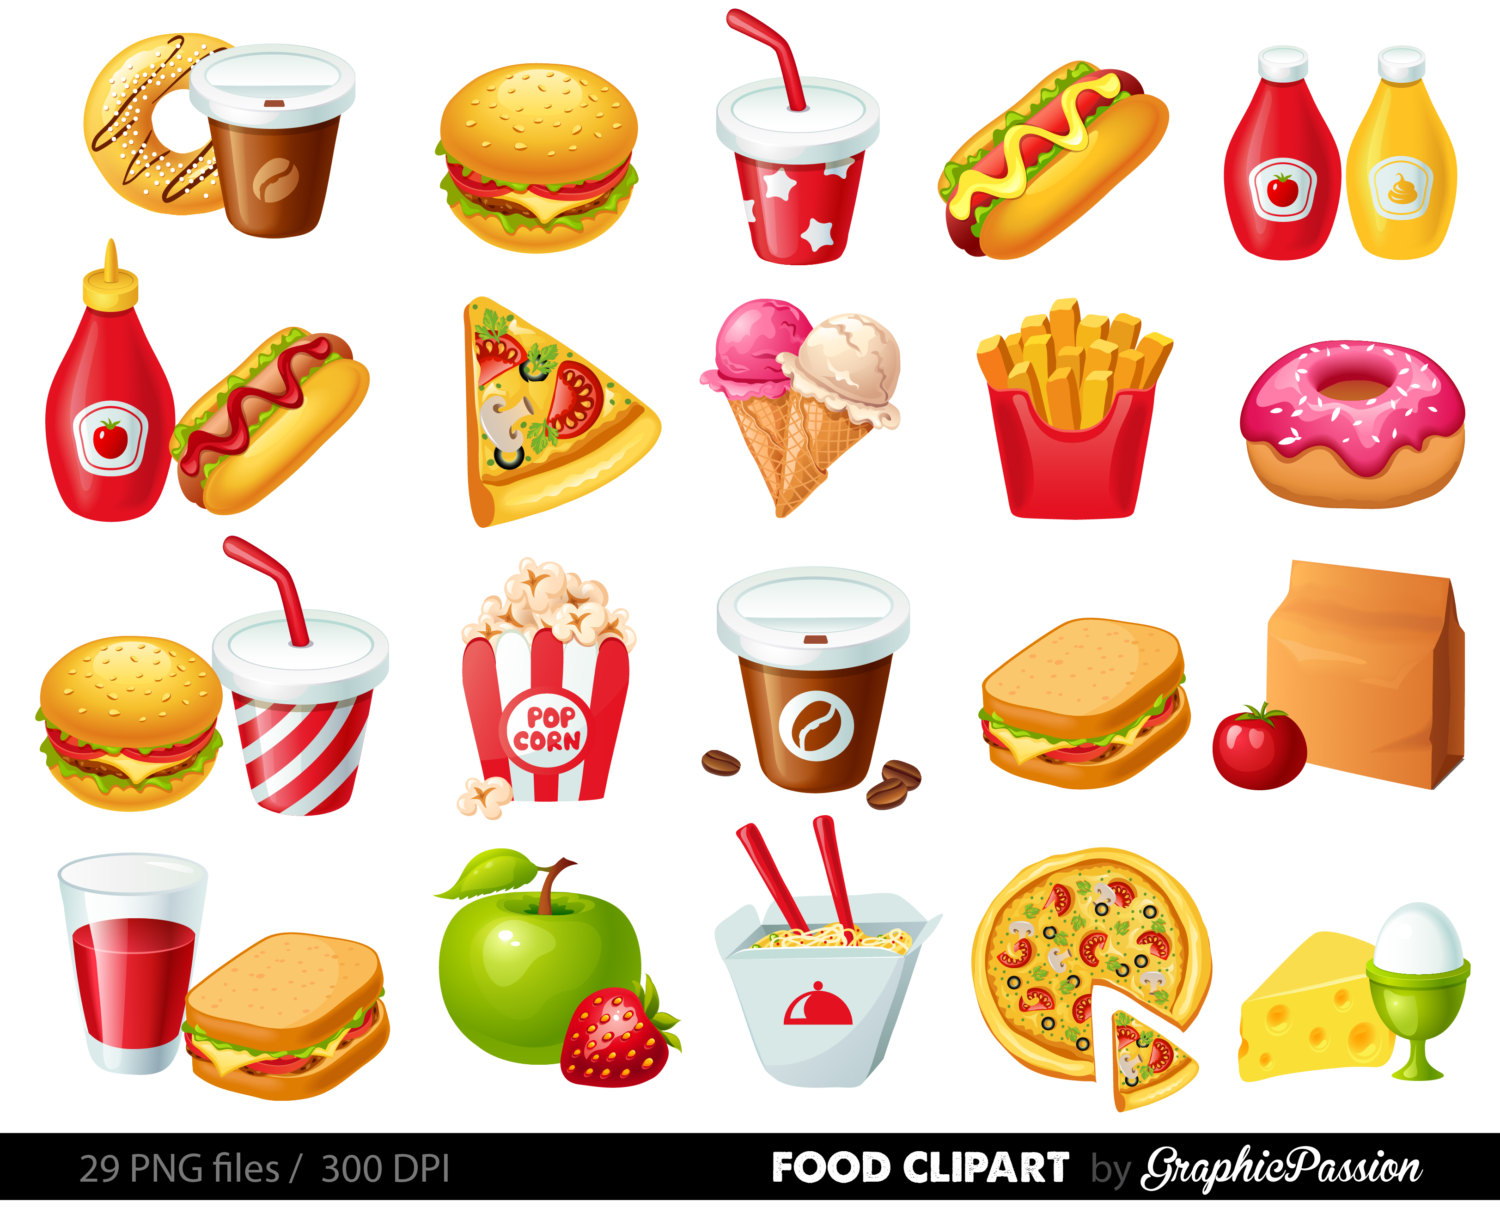 Food clipart #14, Download drawings